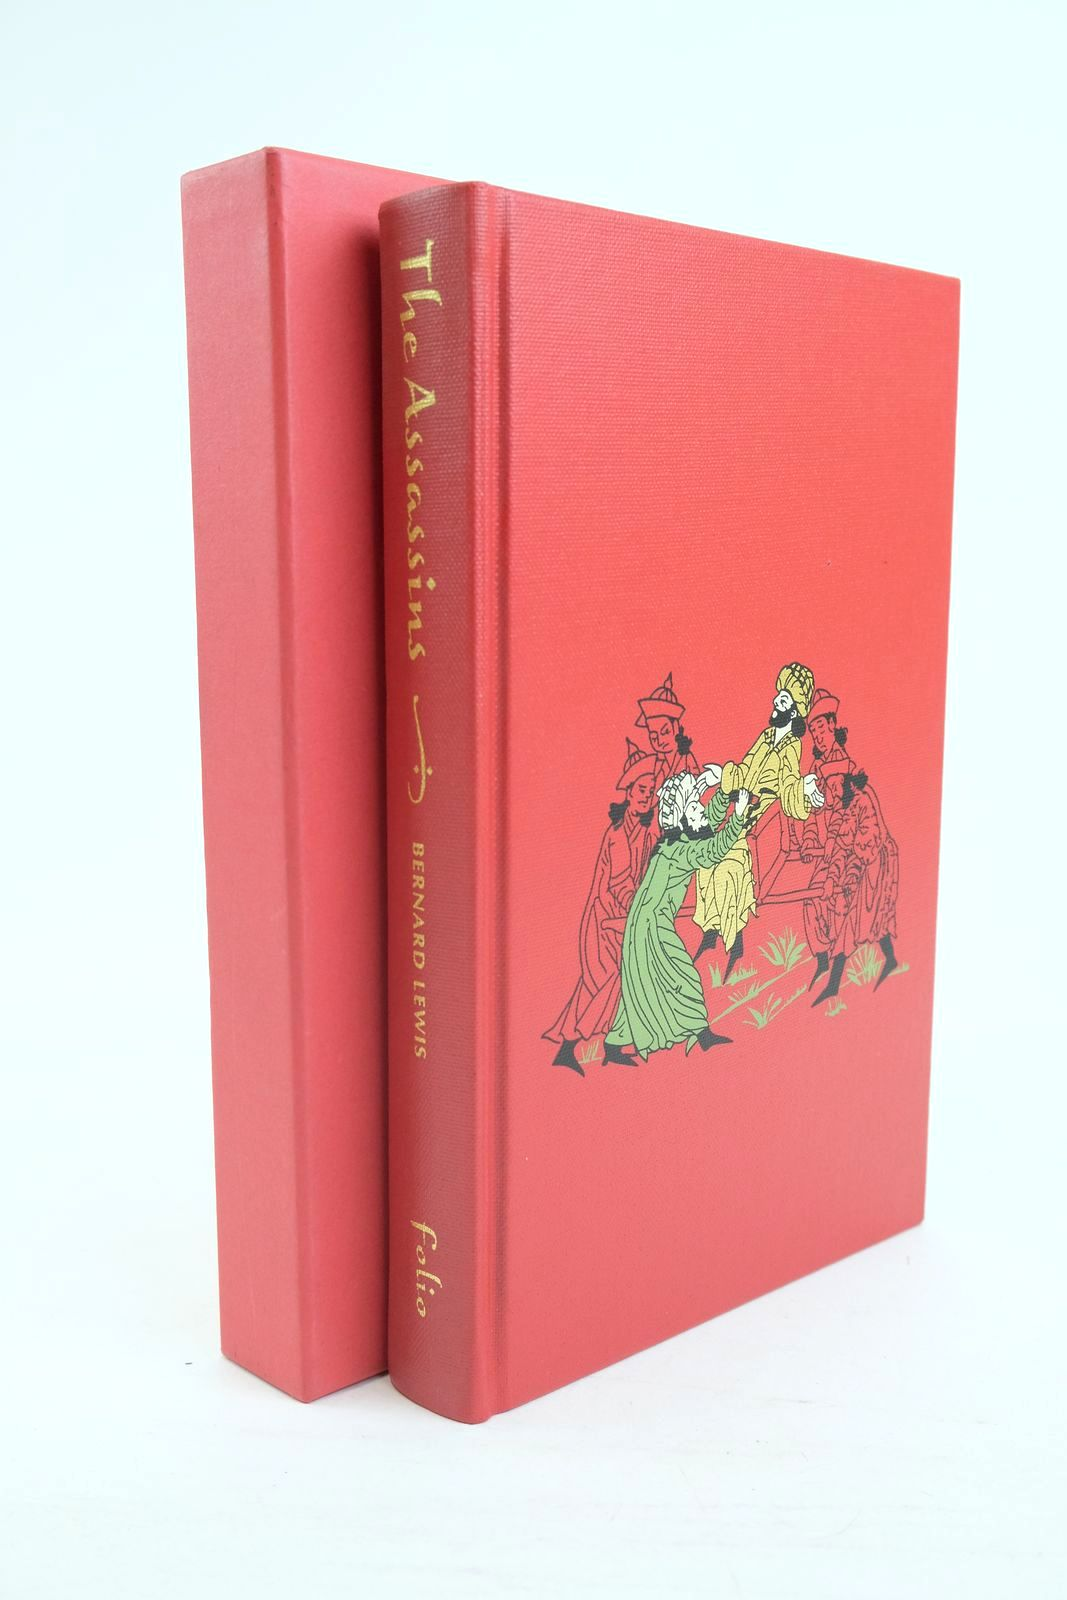 Photo of THE ASSASSINS written by Lewis, Bernard published by Folio Society (STOCK CODE: 1320028)  for sale by Stella & Rose's Books